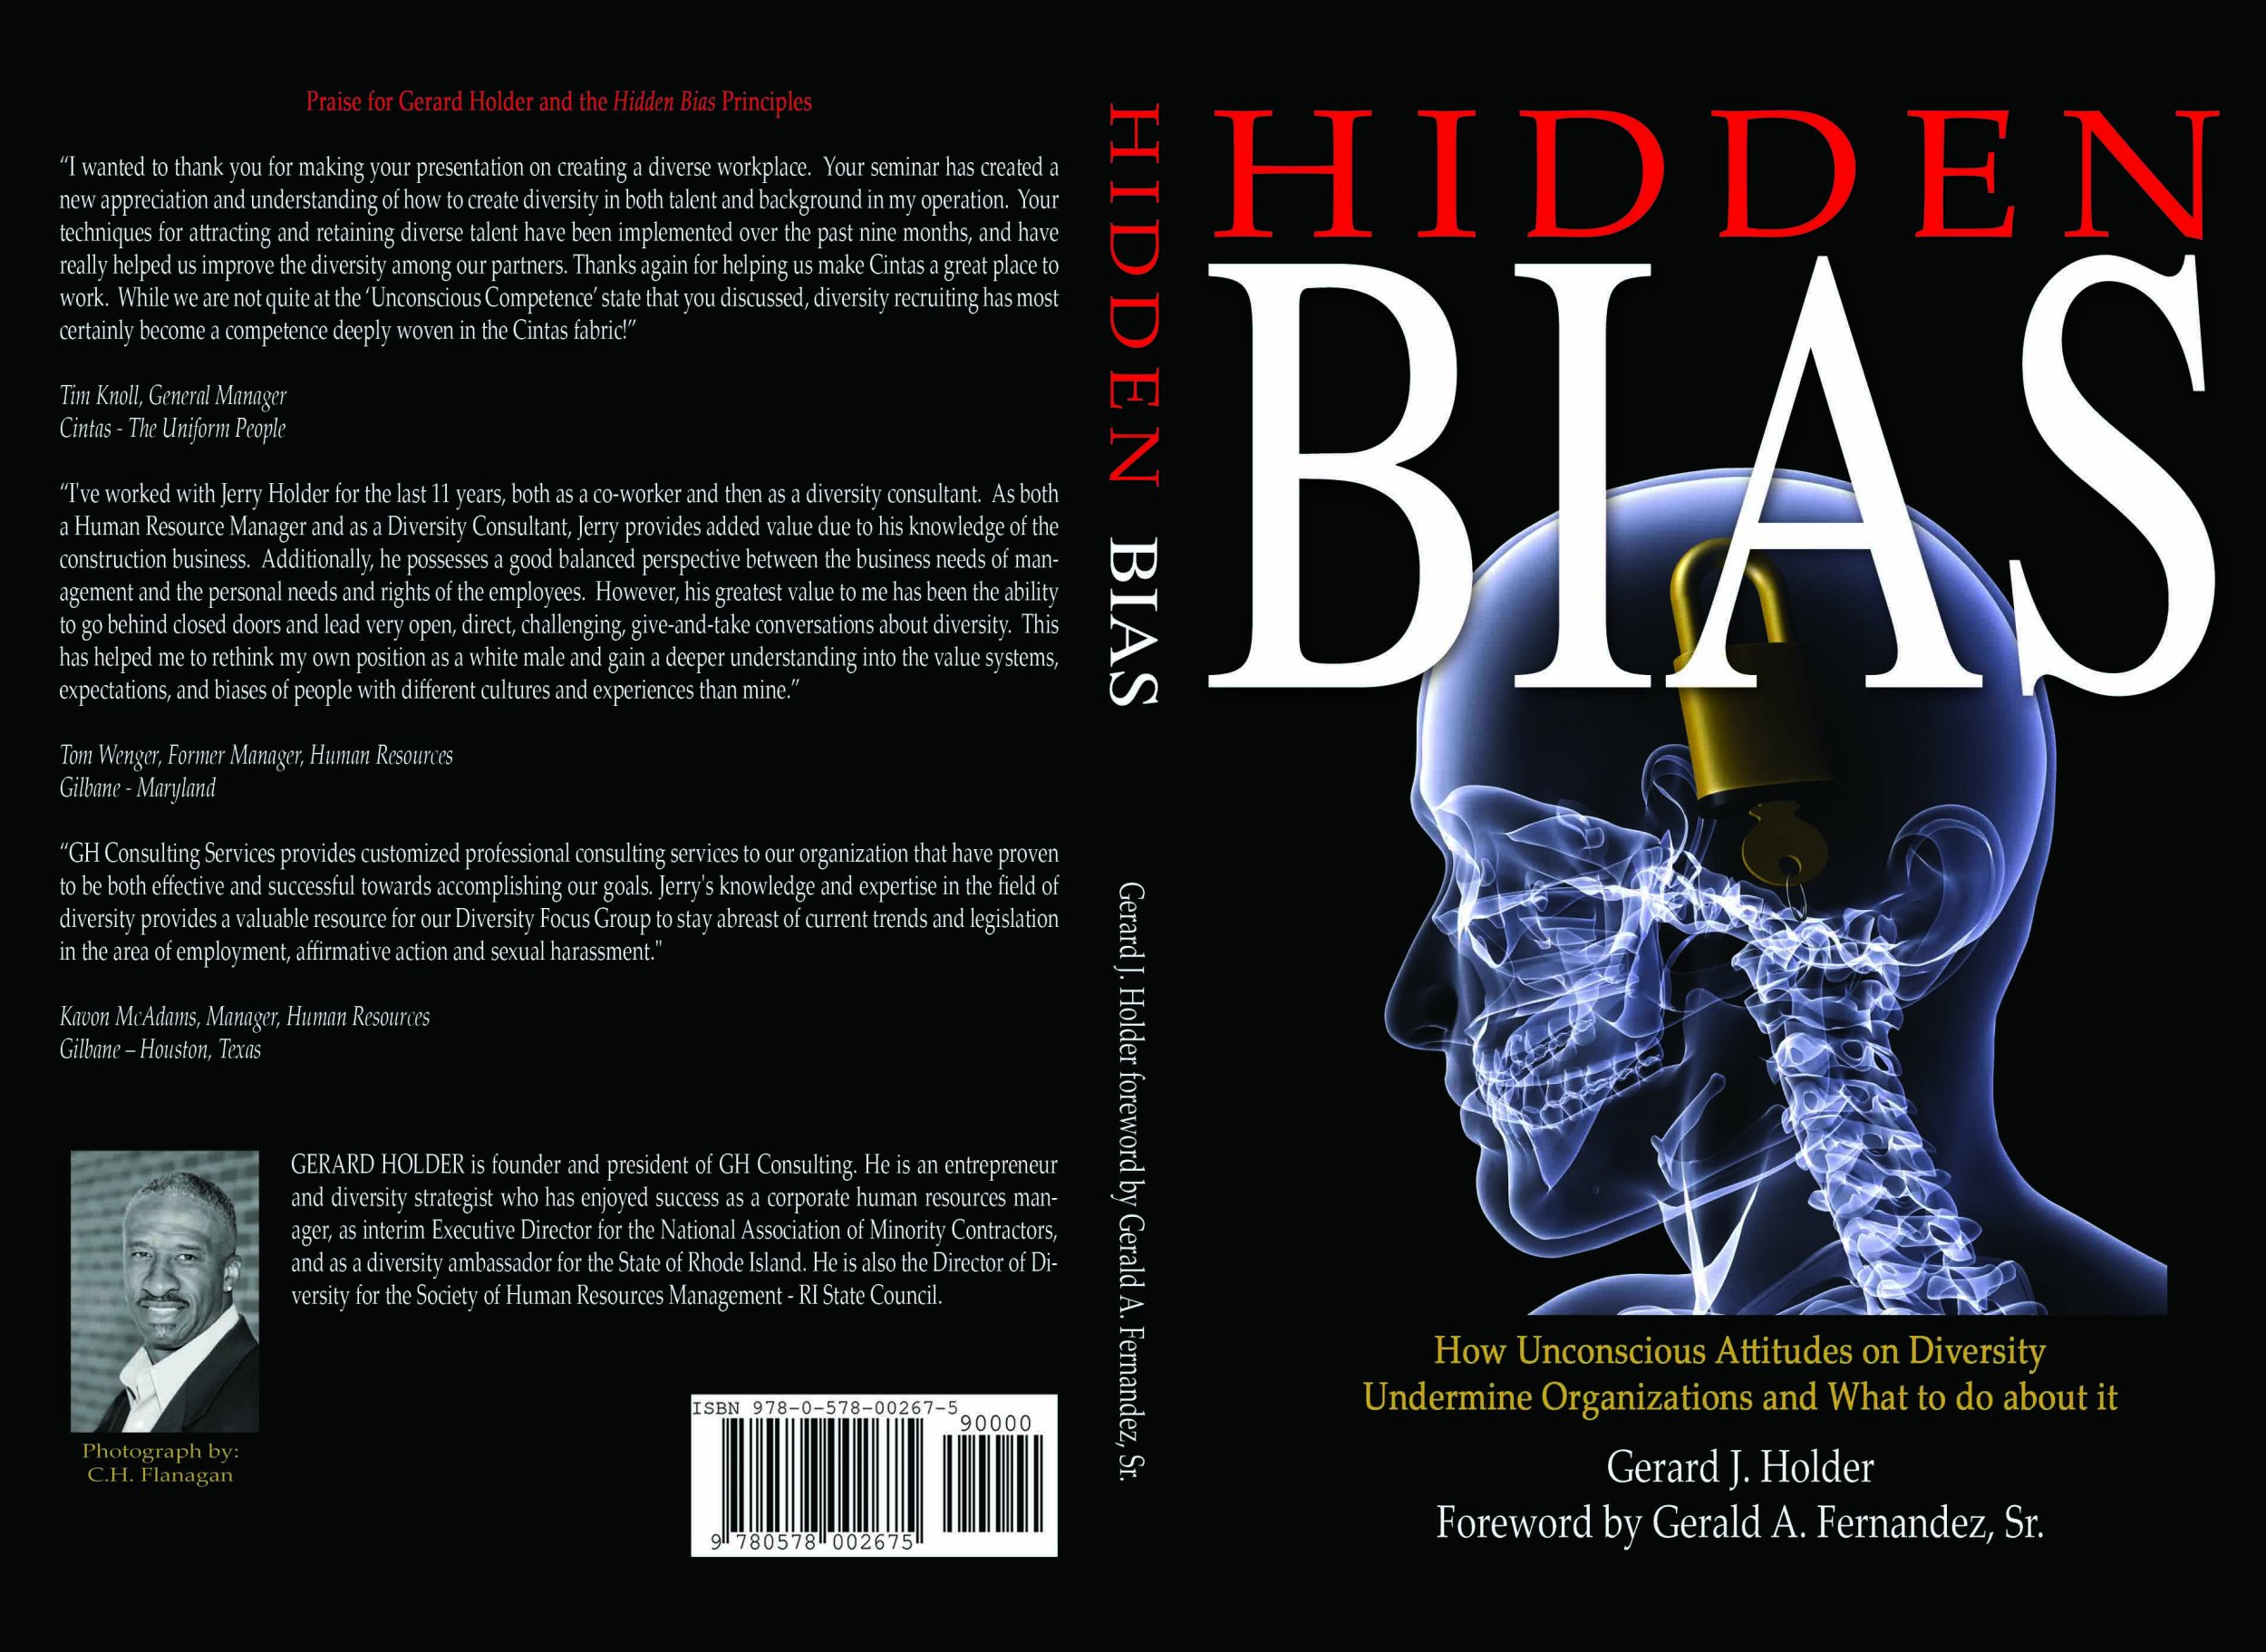 hidden bias how unconscious attitudes on diversity undermine hidden bias how unconscious attitudes on diversity undermine organizations and what to do about it gerard j holder iwordsmith com 9780578002675